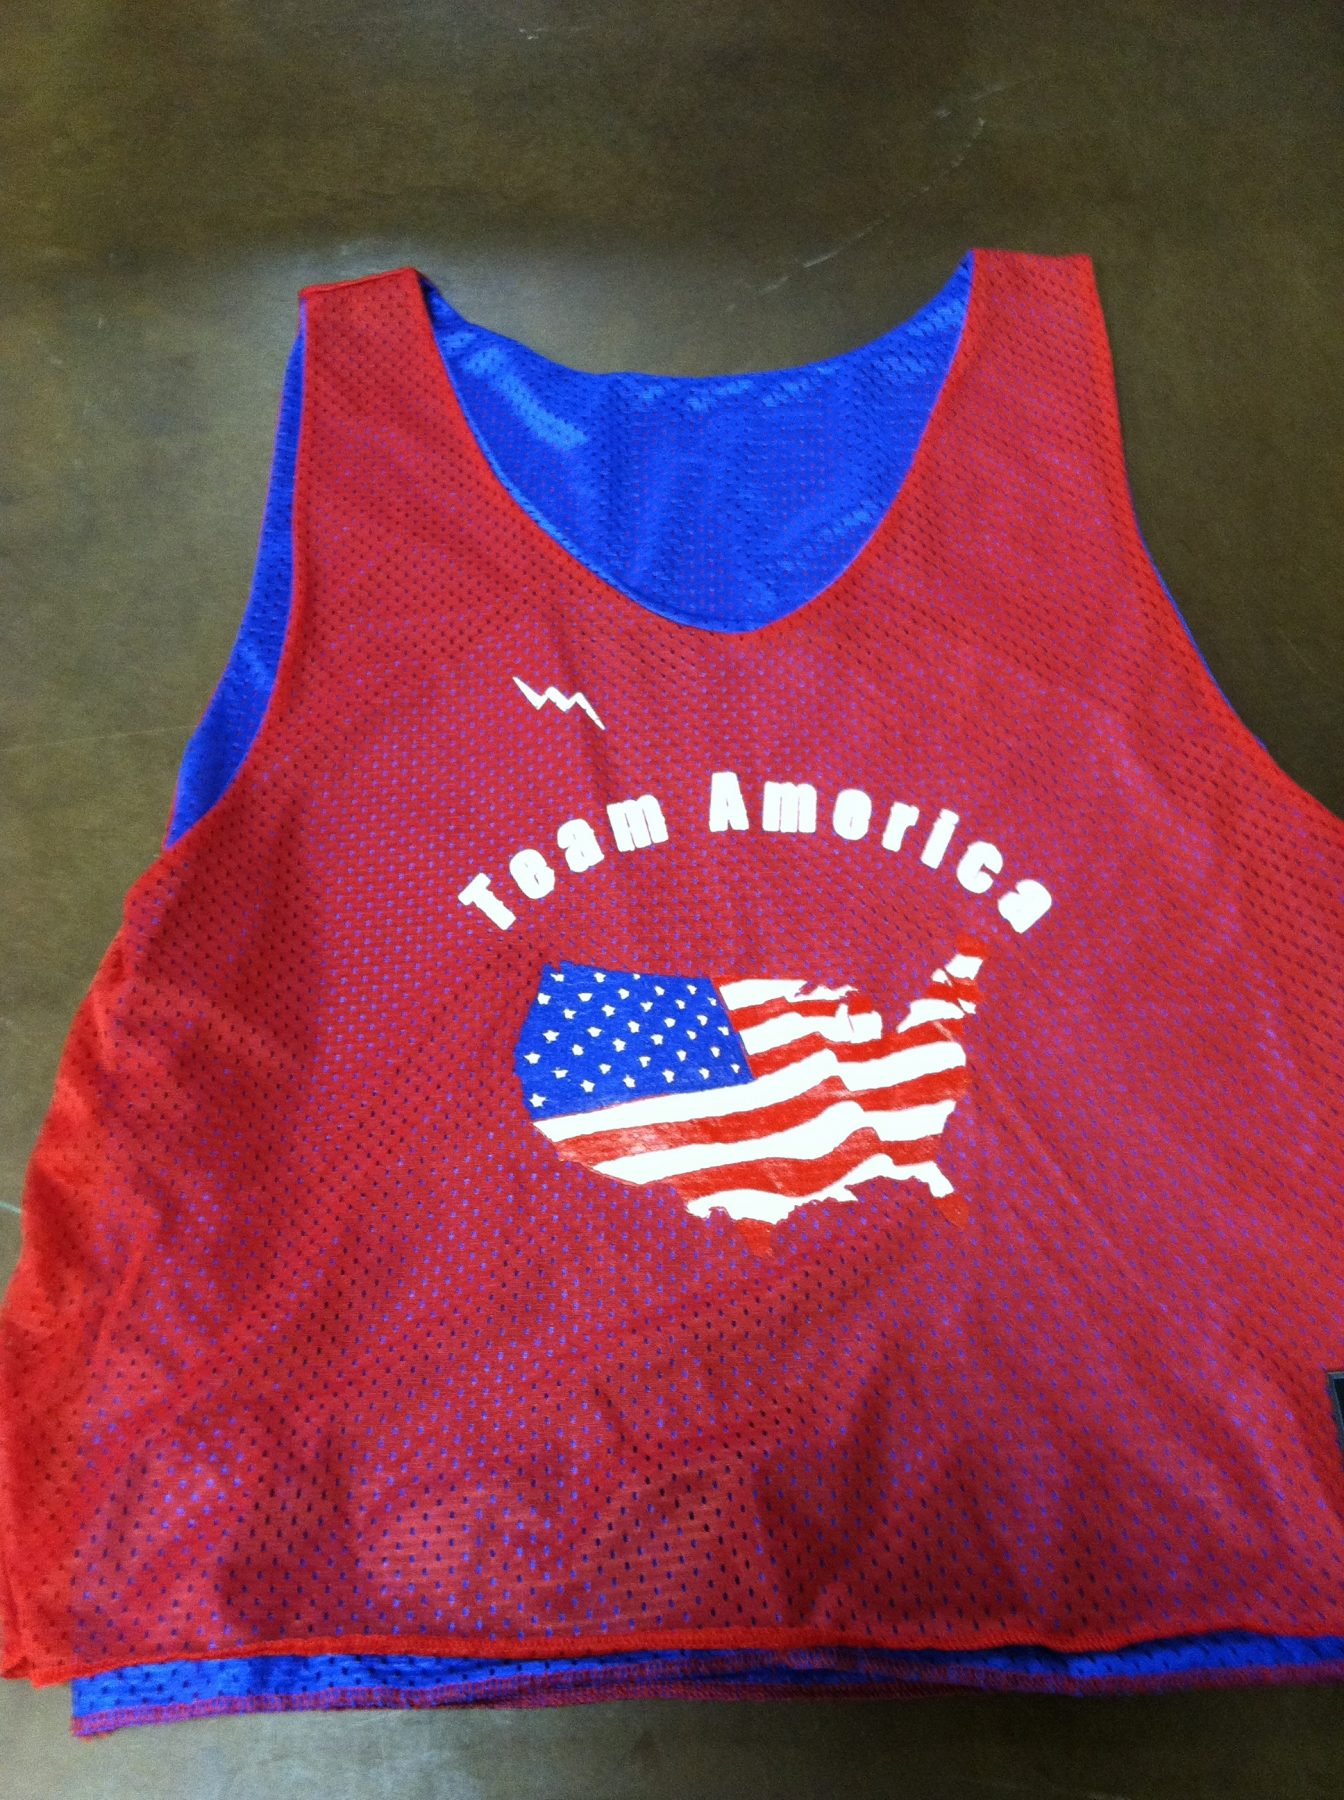 team america pinnies